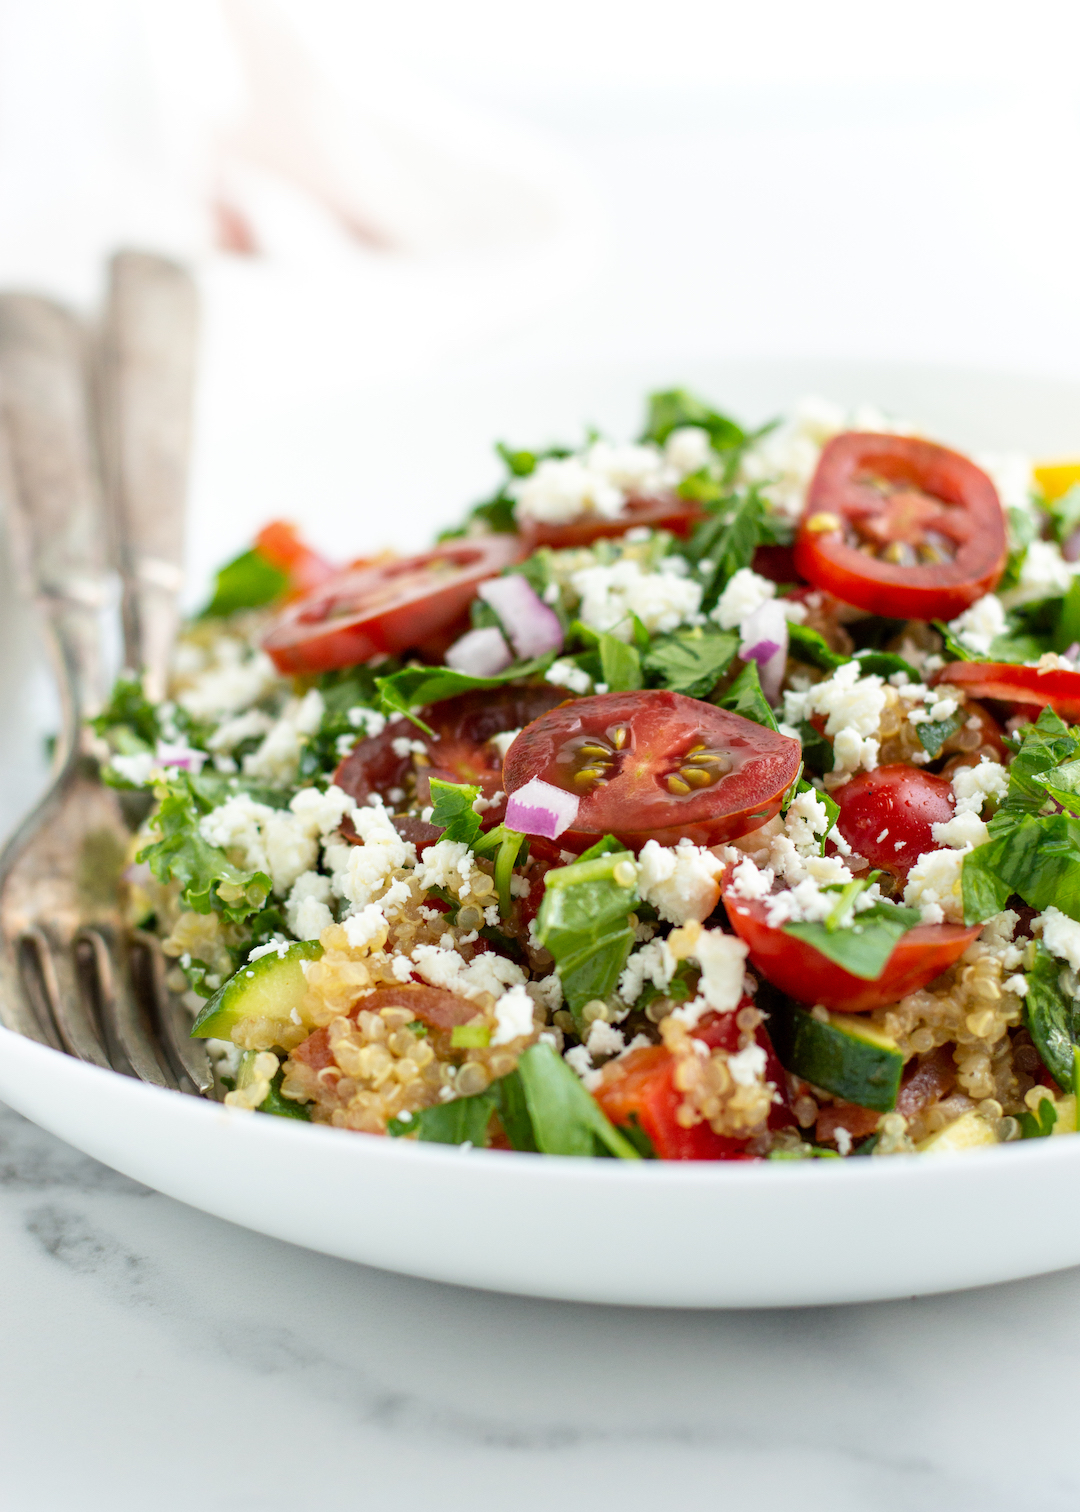 Quinoa salad doesn't get easier than this! This Easy Quinoa Salad with Garden Veggies is a simple yet protein-packed, clean eating recipe perfect for a cold lunch or healthy side for dinner. Made gluten free and vegetarian with kale, zucchini and fresh herbs and topped with a sweet citrus dressing. Best topped with lots and lots of feta cheese!